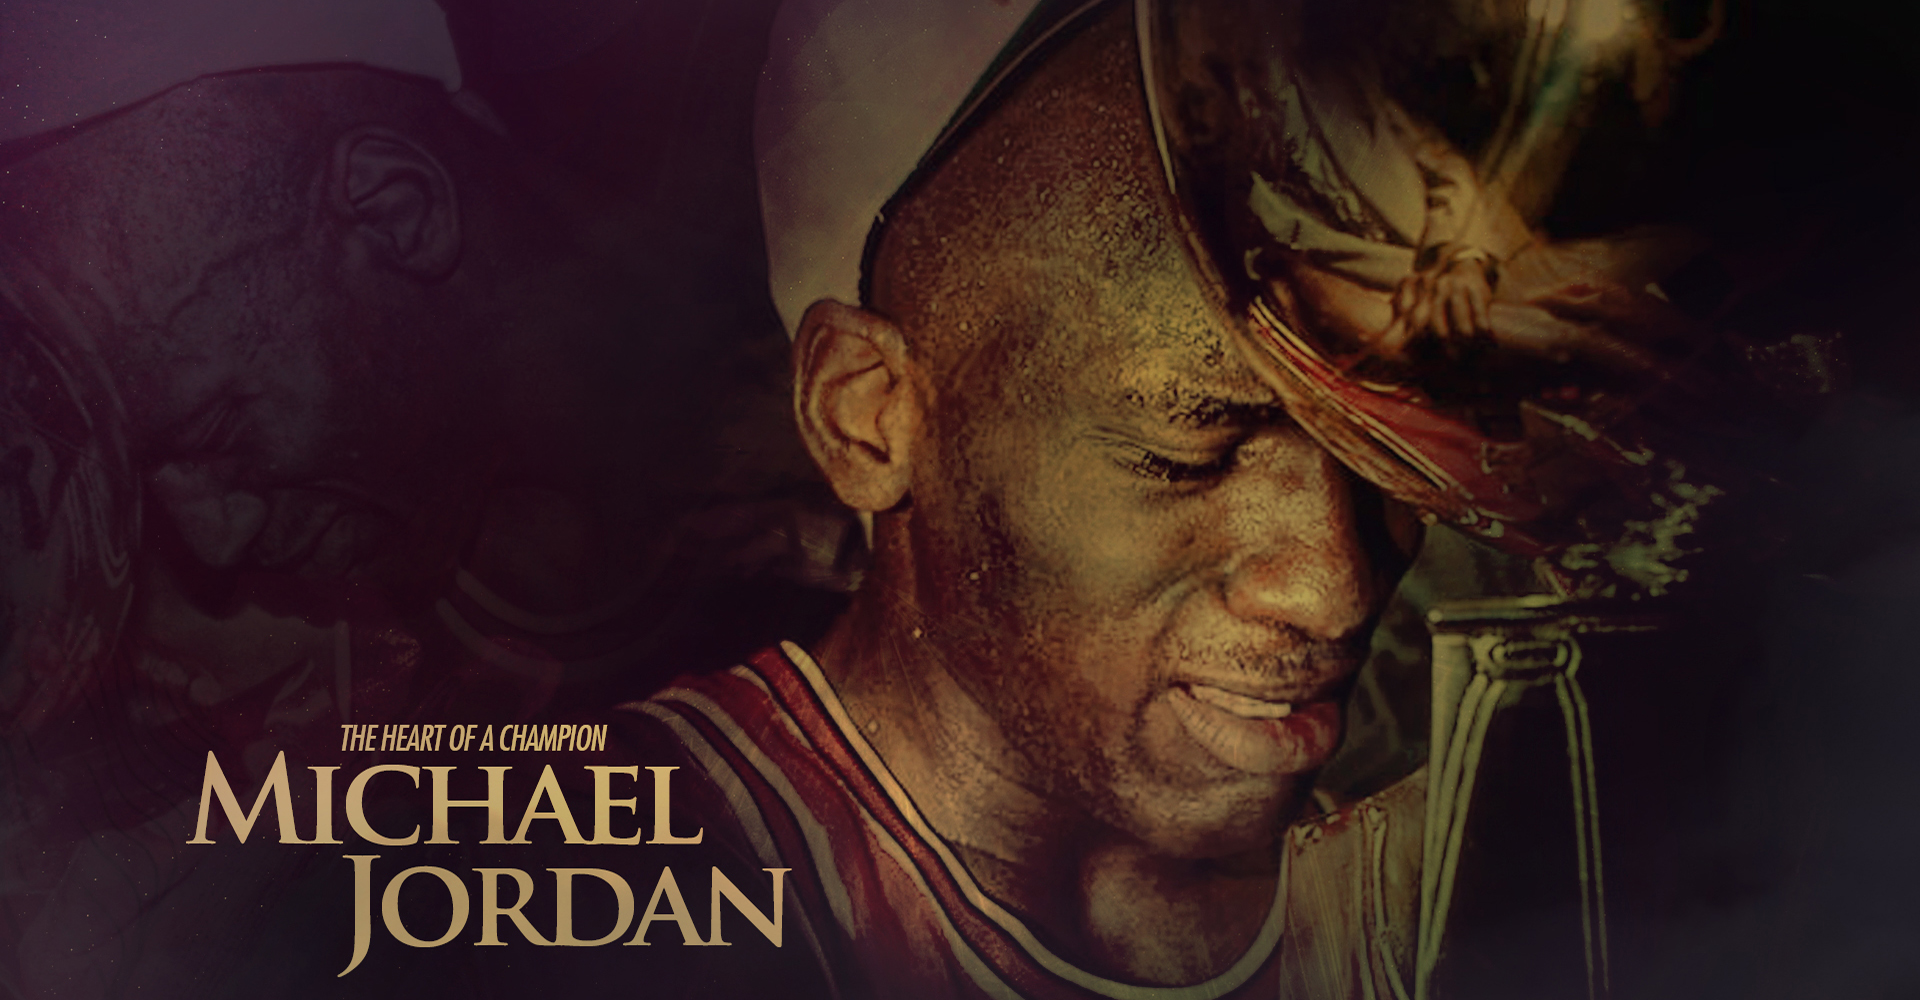 Welcome to Michael-Jordan23.com